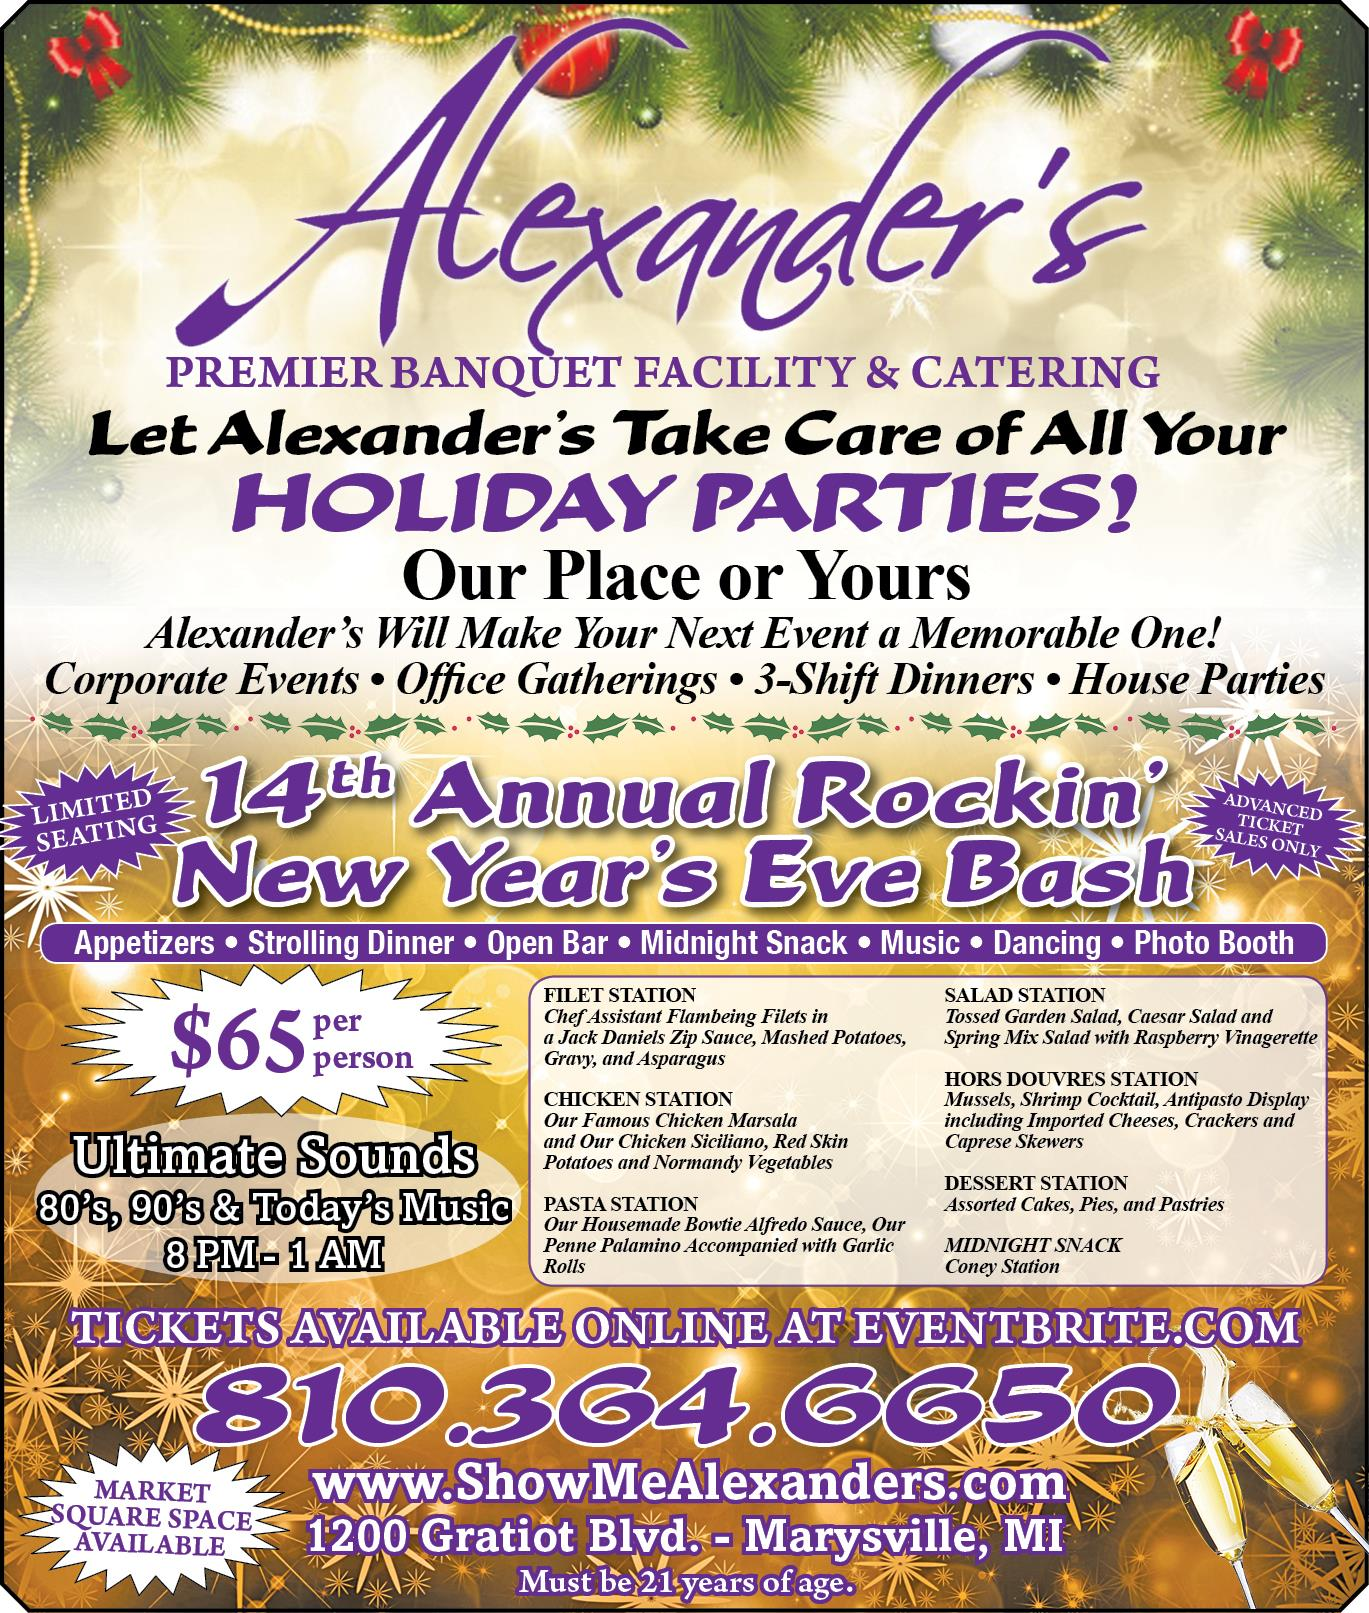 Let Alexander Take Care of All Your Holiday Parties! Our Place or Yours. 14th Annual Rockin' New Years Eve Bash - Tickets Avaialble Online at Eventbrite.com / (810)364-6650